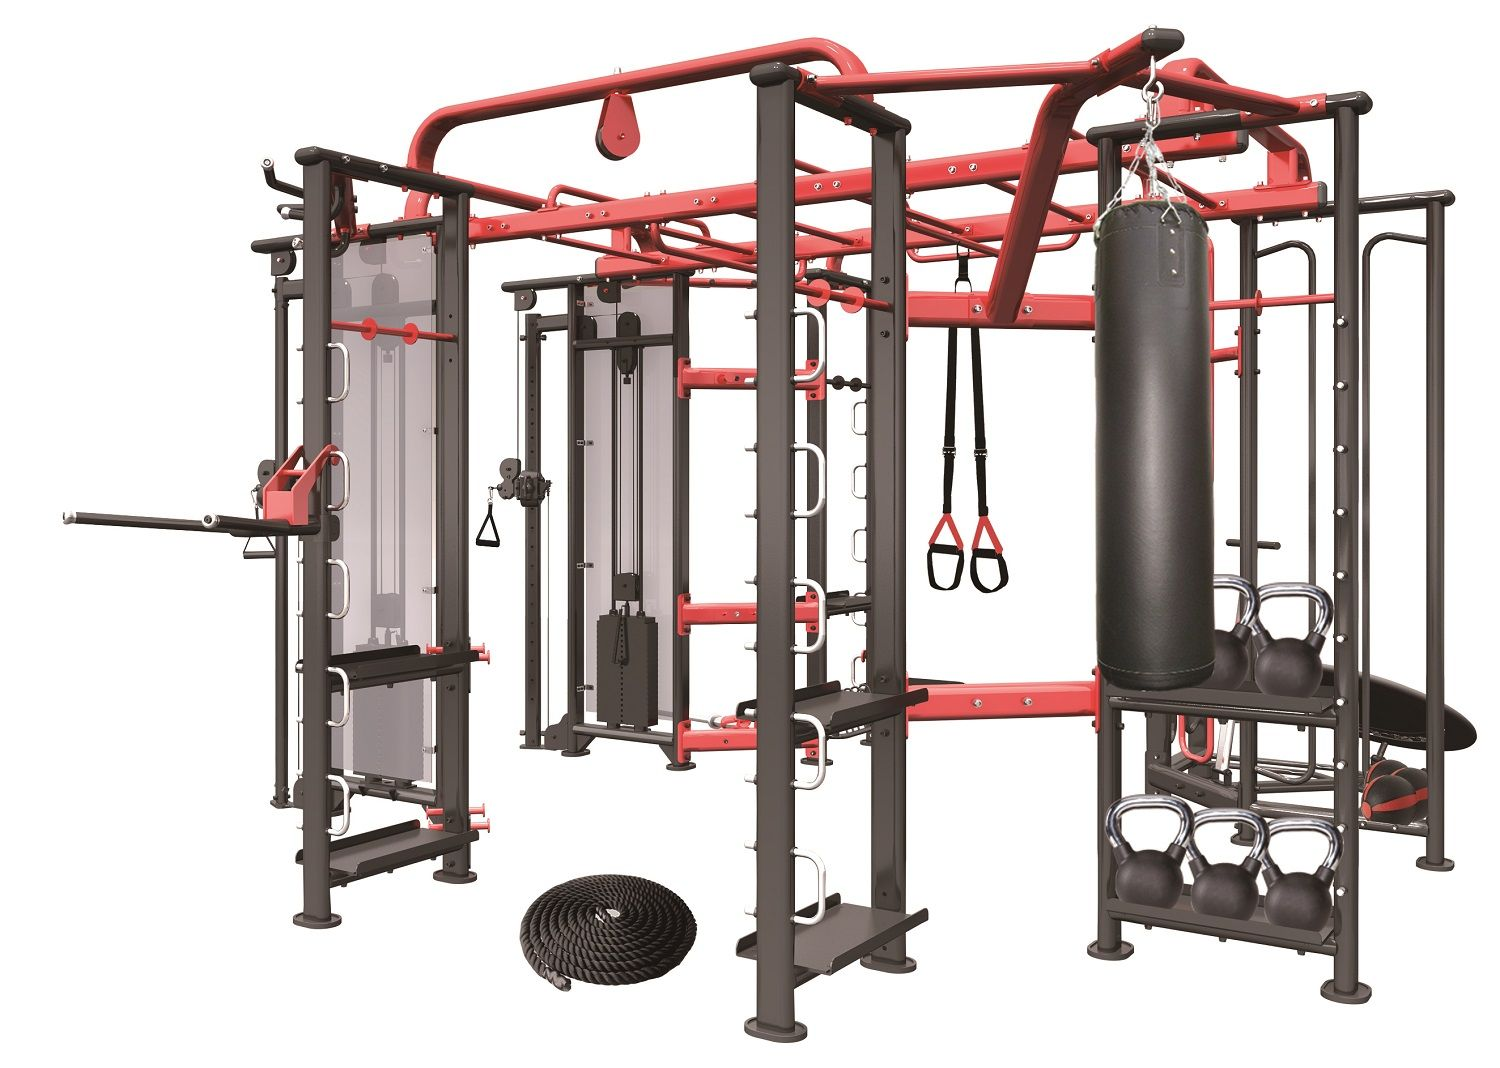 Aparatos Fitness Para Casa Power Racks And Smith Machines Cross Training Rig And Cable